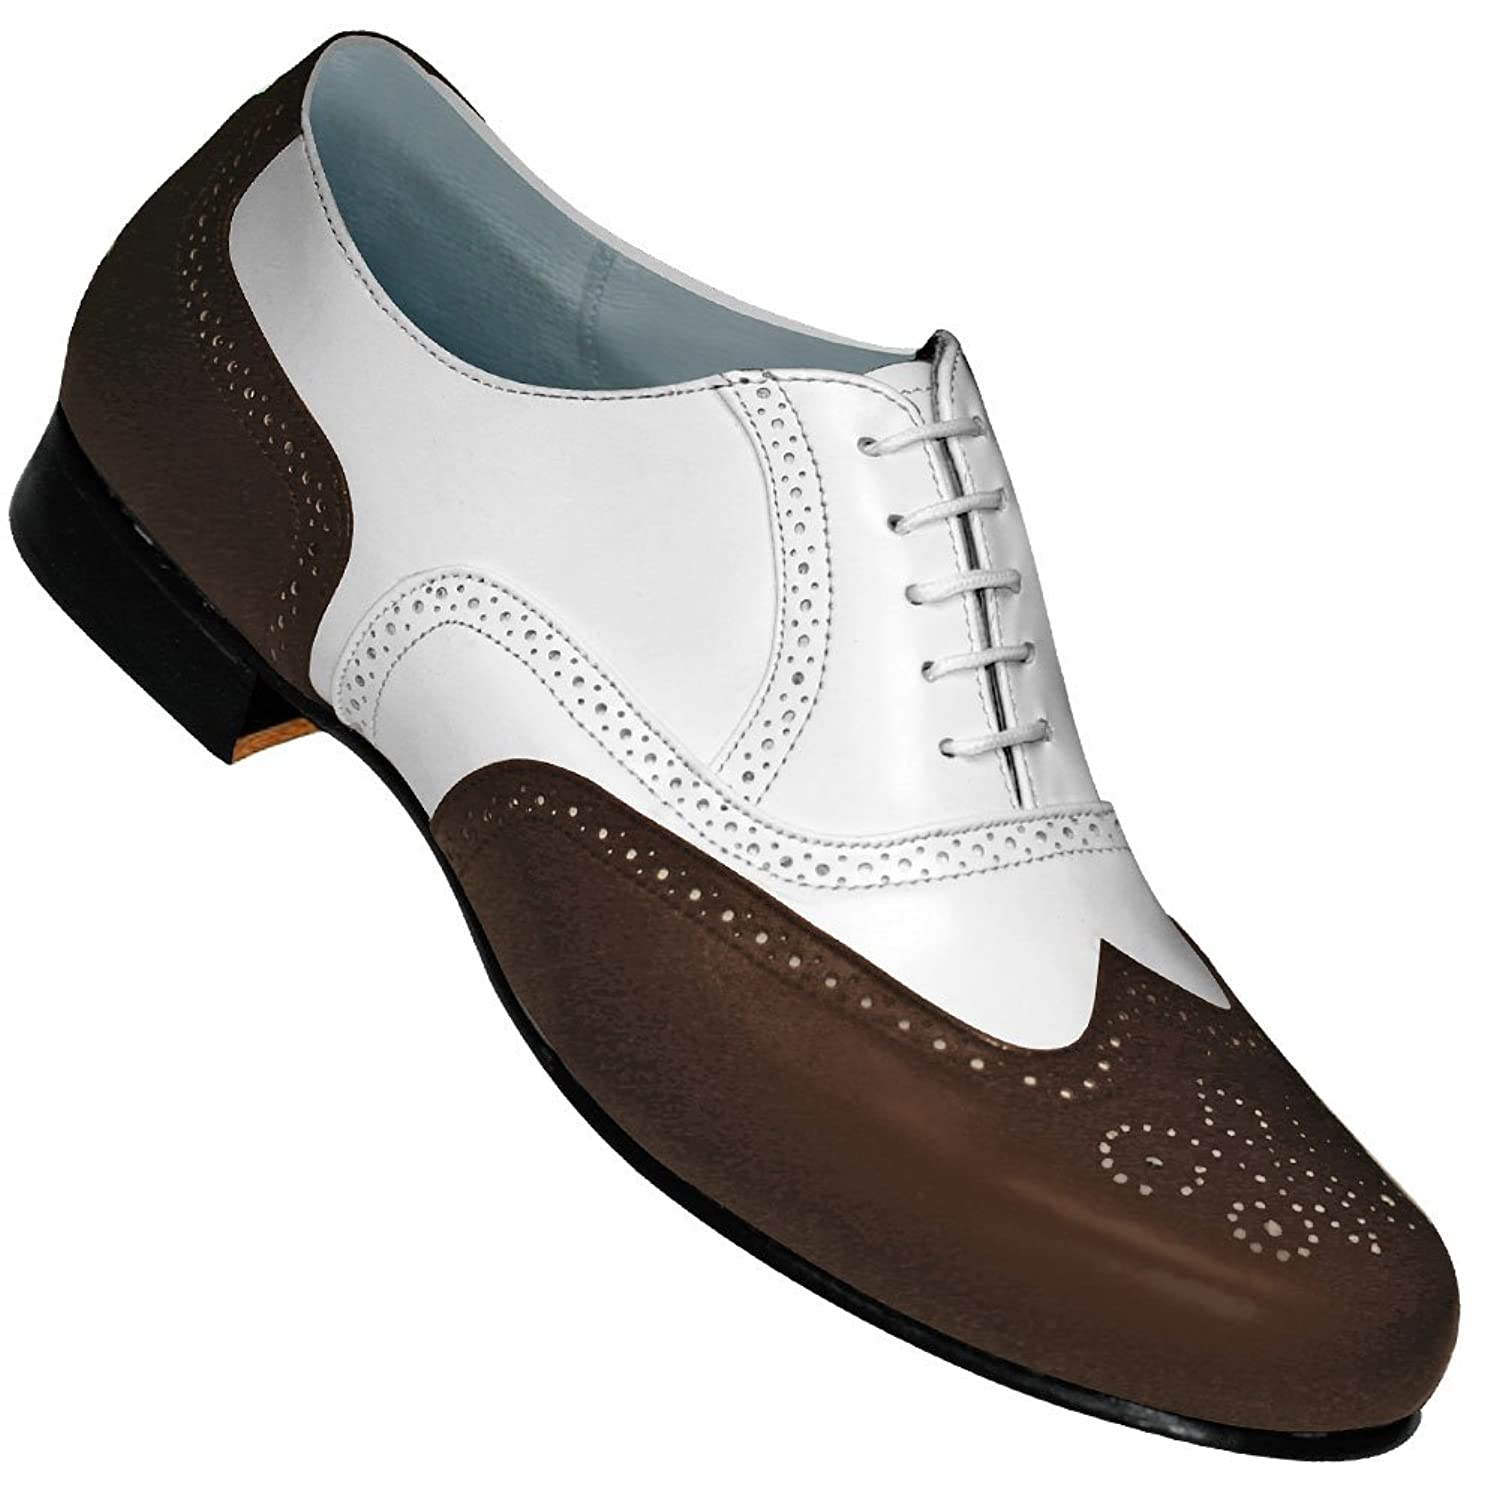 1940s Womens Shoe Styles Aris Allen Mens 1930s Brown and White Spat Style Wingtip Dance Shoe $48.95 AT vintagedancer.com